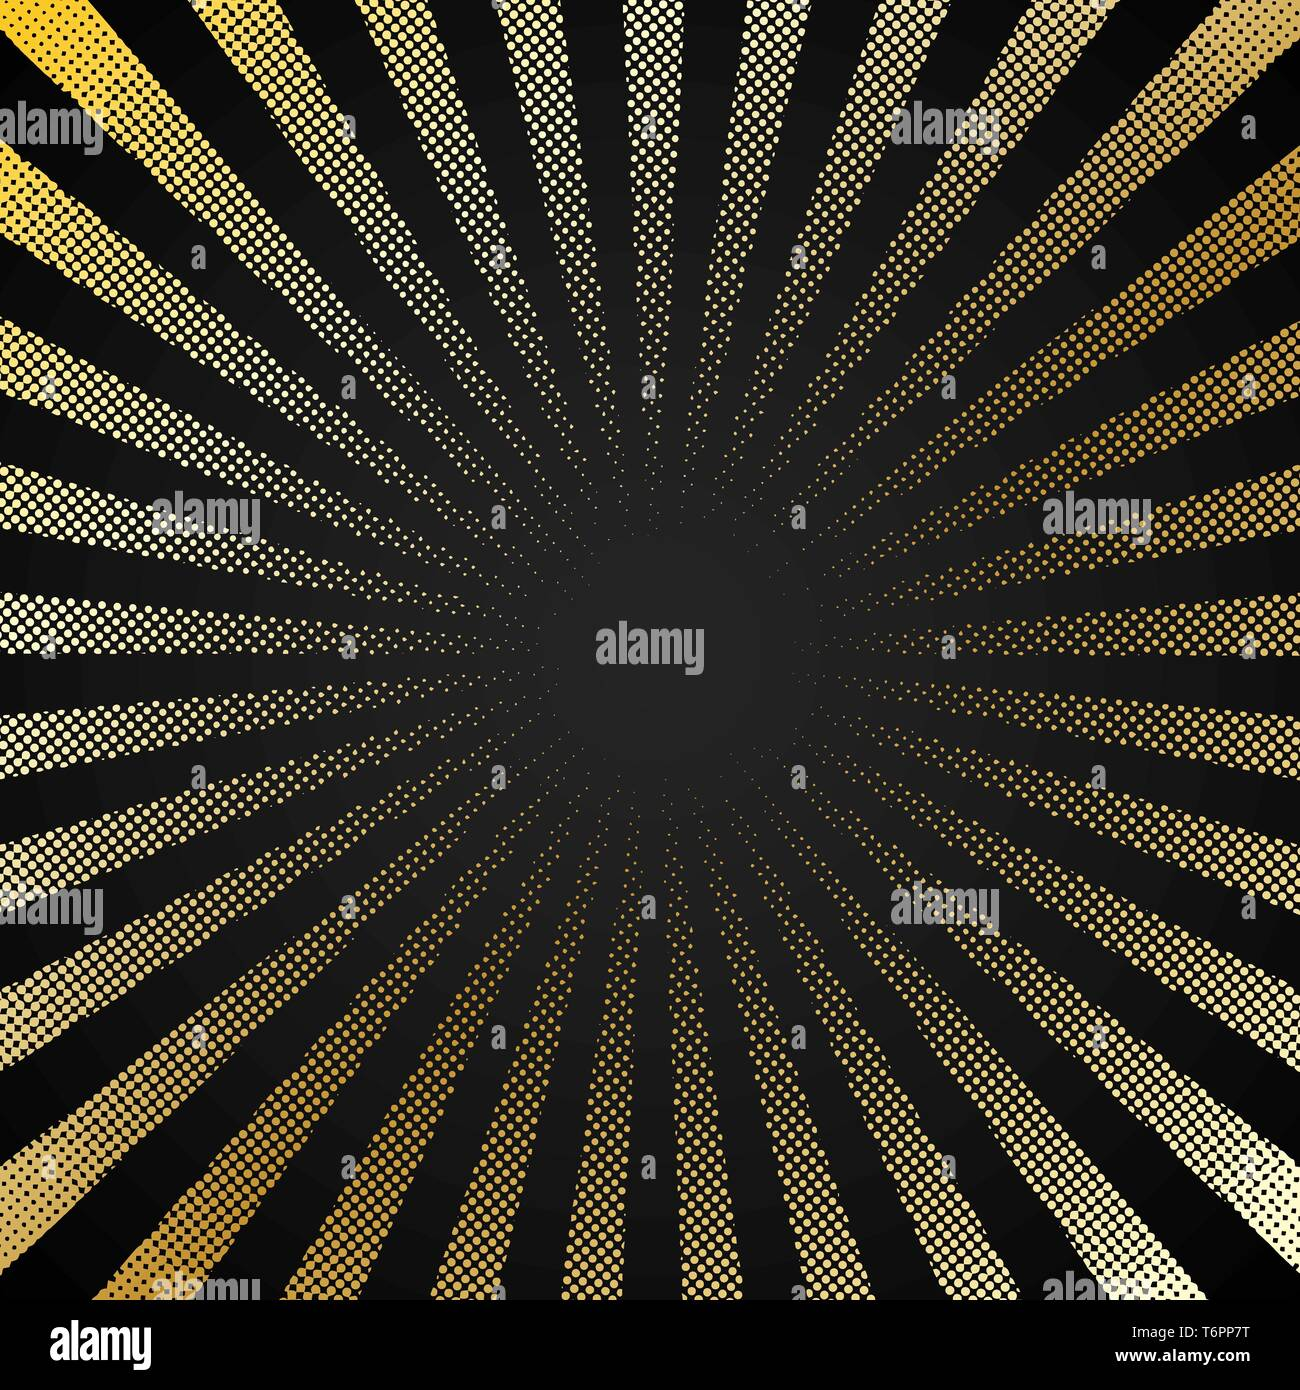 Abstract retro shiny starburst black background with gold dots pattern texture halftone style. Vintage rays backdrop, boom, comic. Cartoon pop art tem - Stock Image